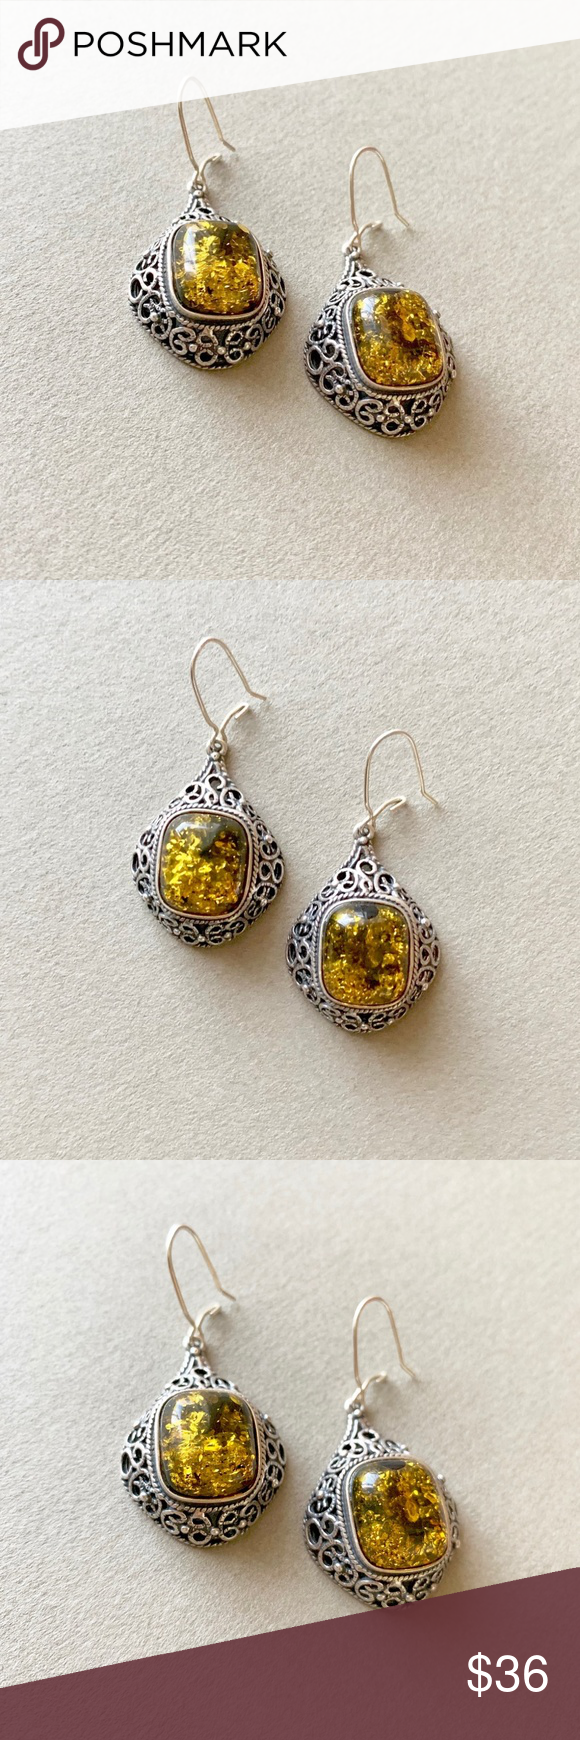 Beautiful Sterling Silver With Amber Earrings Never Worn